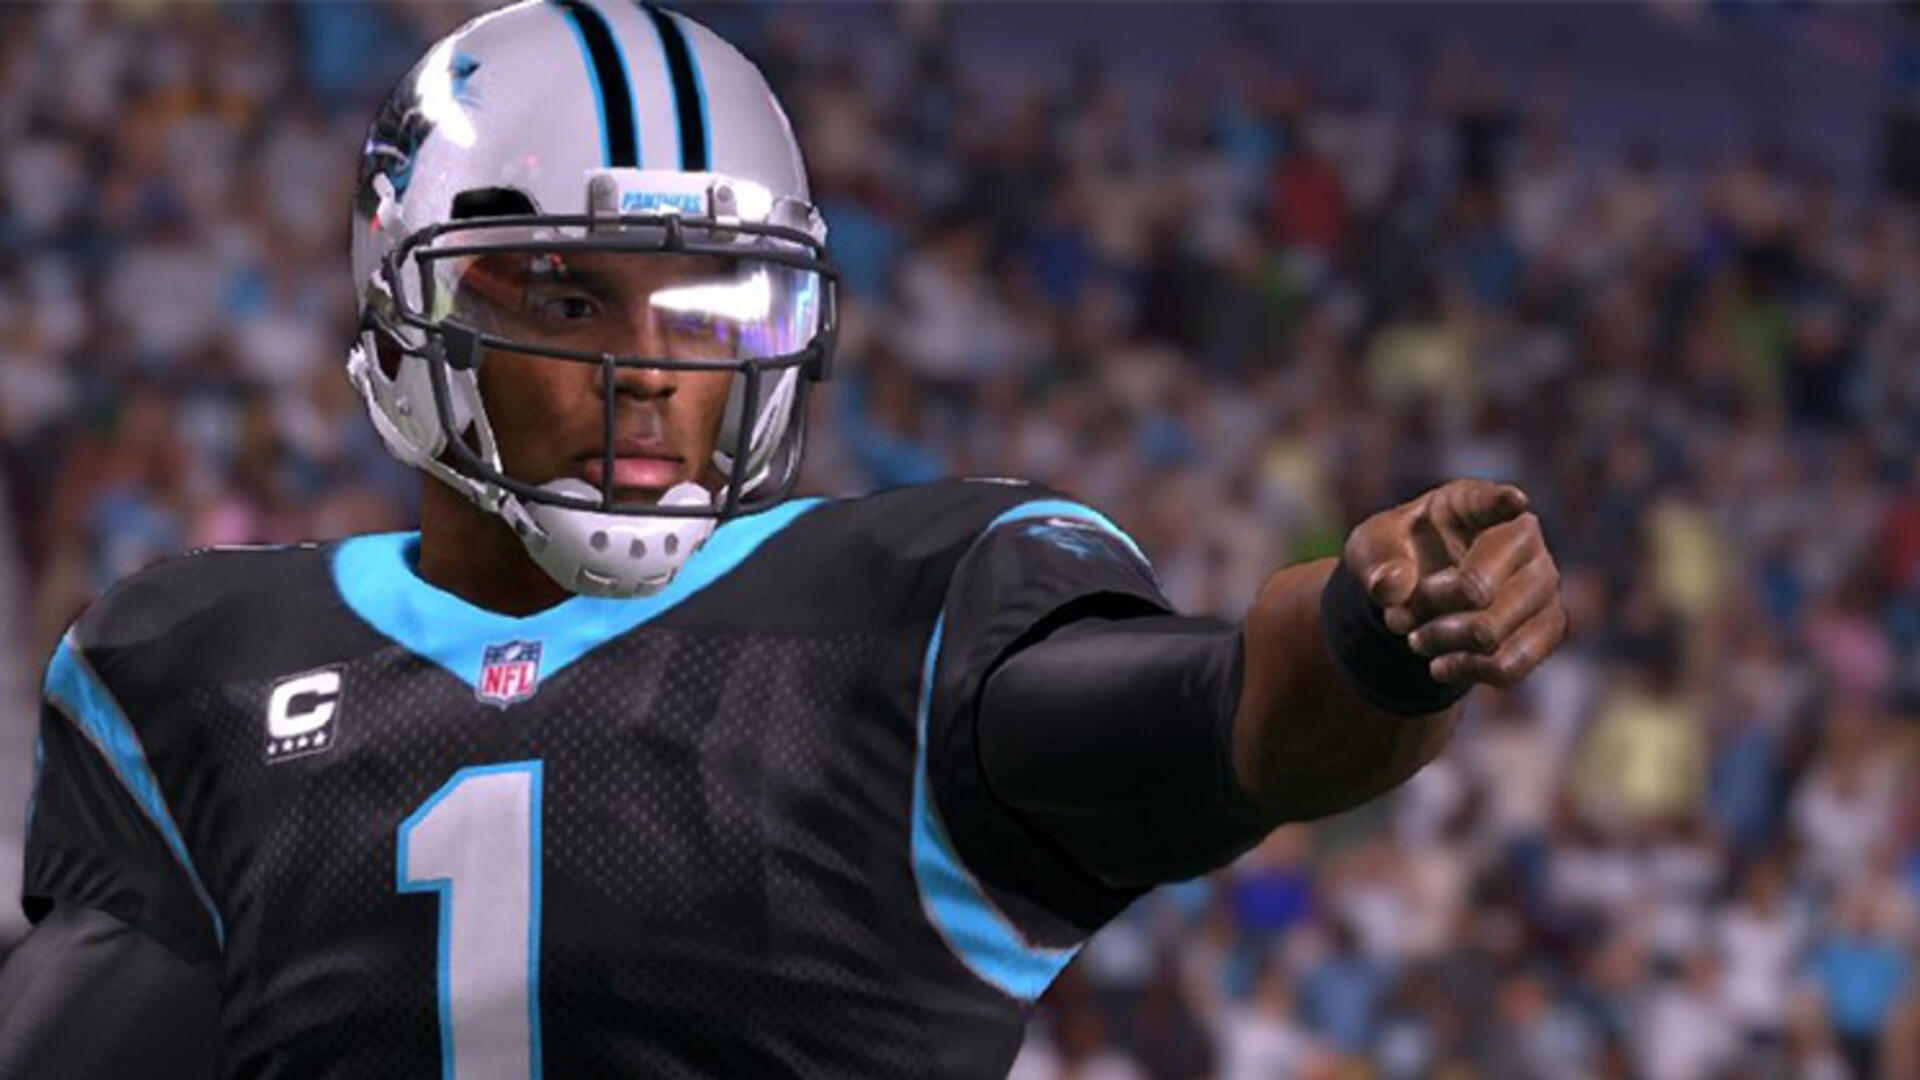 Madden NFL 16's Huge Update is a Surprise, Though Stability Issues Remain